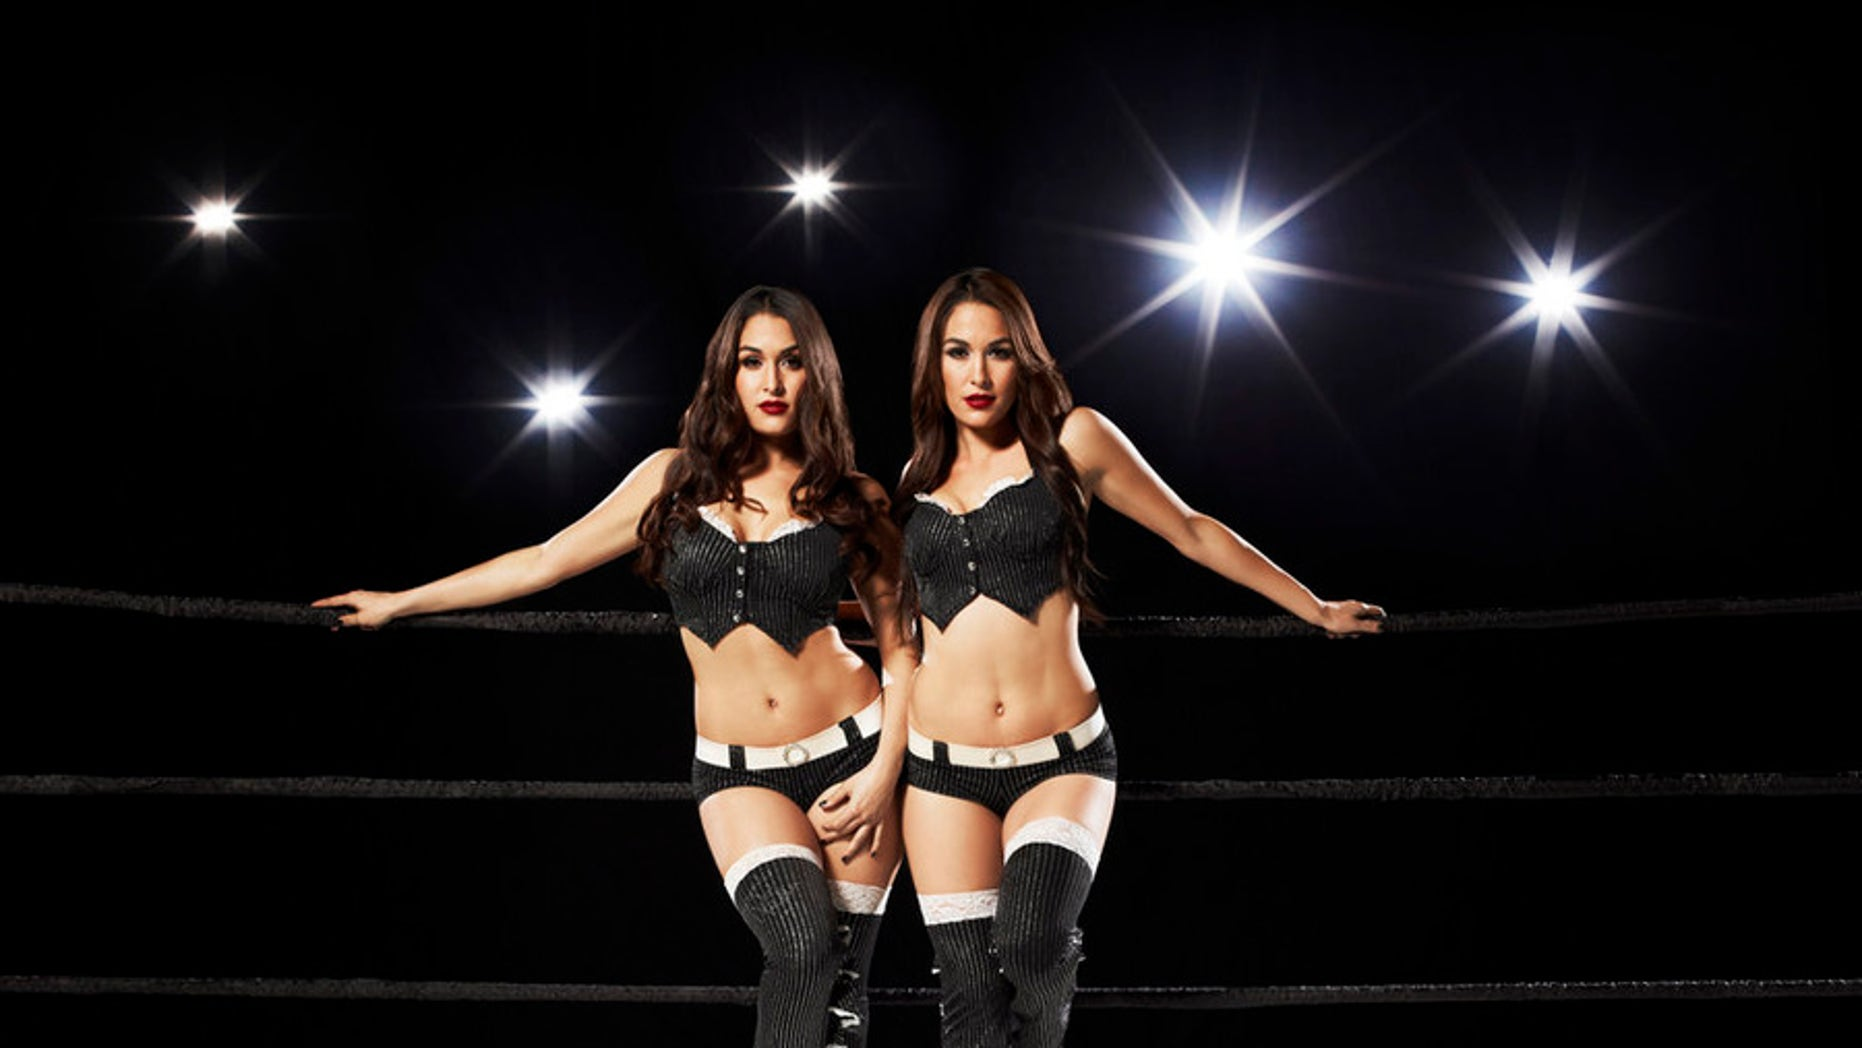 The Bella Twins appear in an E! photoshoot. (Photo by: Timothy White/E!)